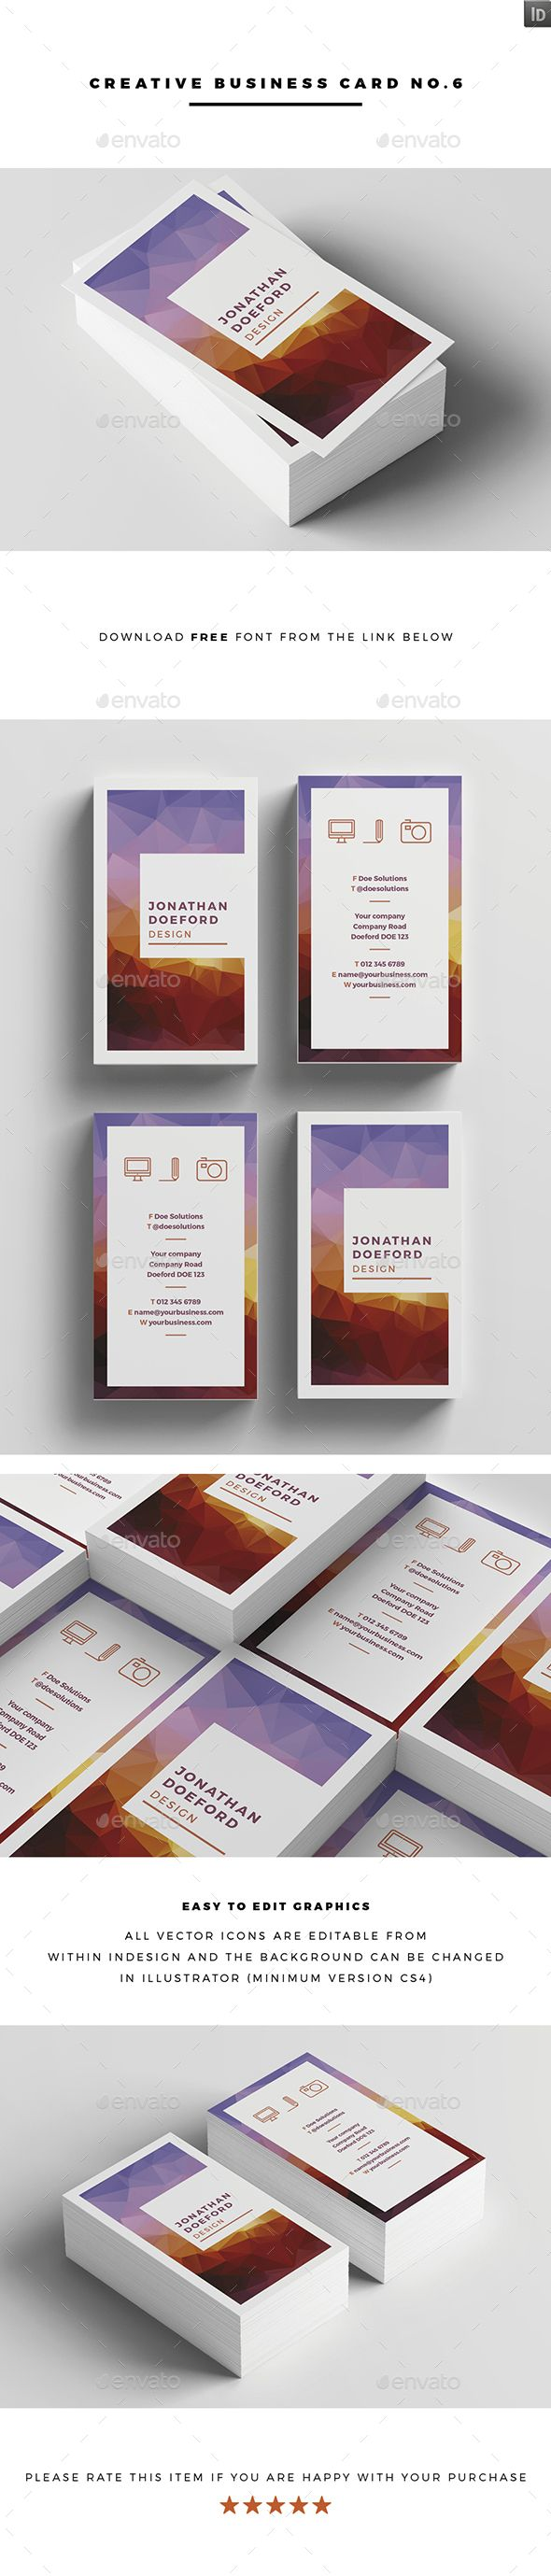 Creative Business Card No.6 | Business cards, Business and Card ...